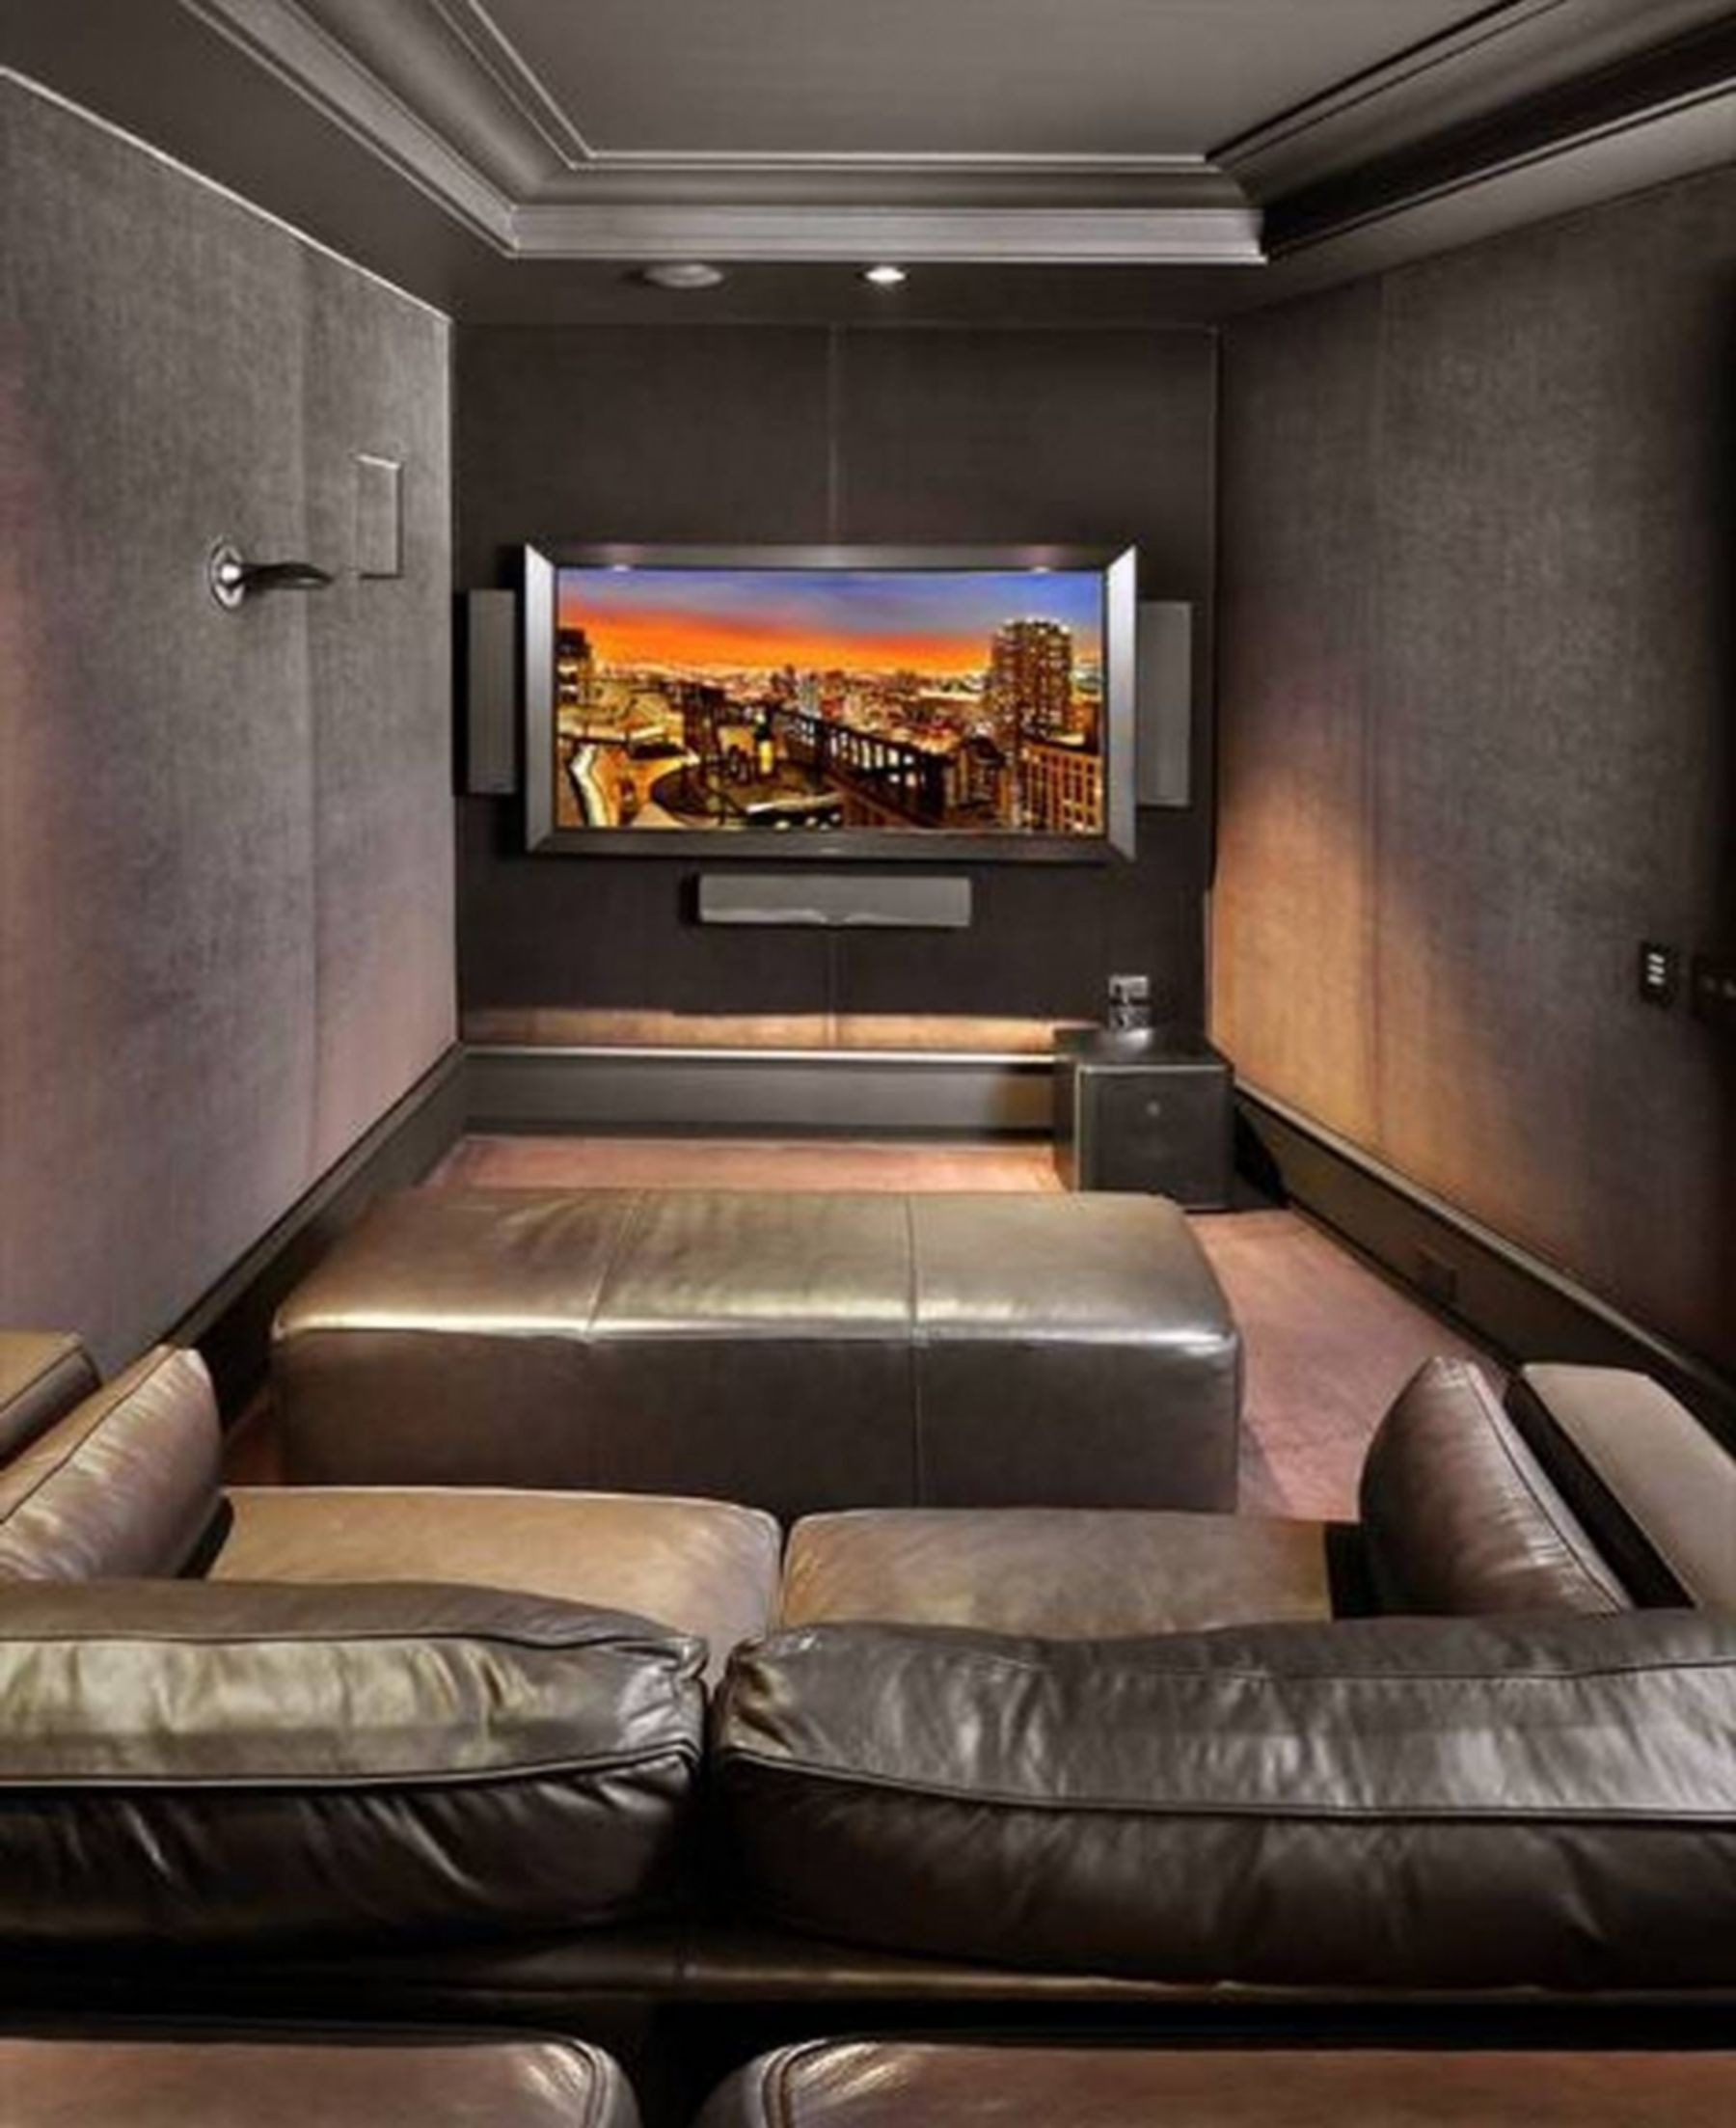 20 Best Garage Remodel Ideas To Be Amazing Room Small Home Theaters Home Cinema Room Home Theater Rooms